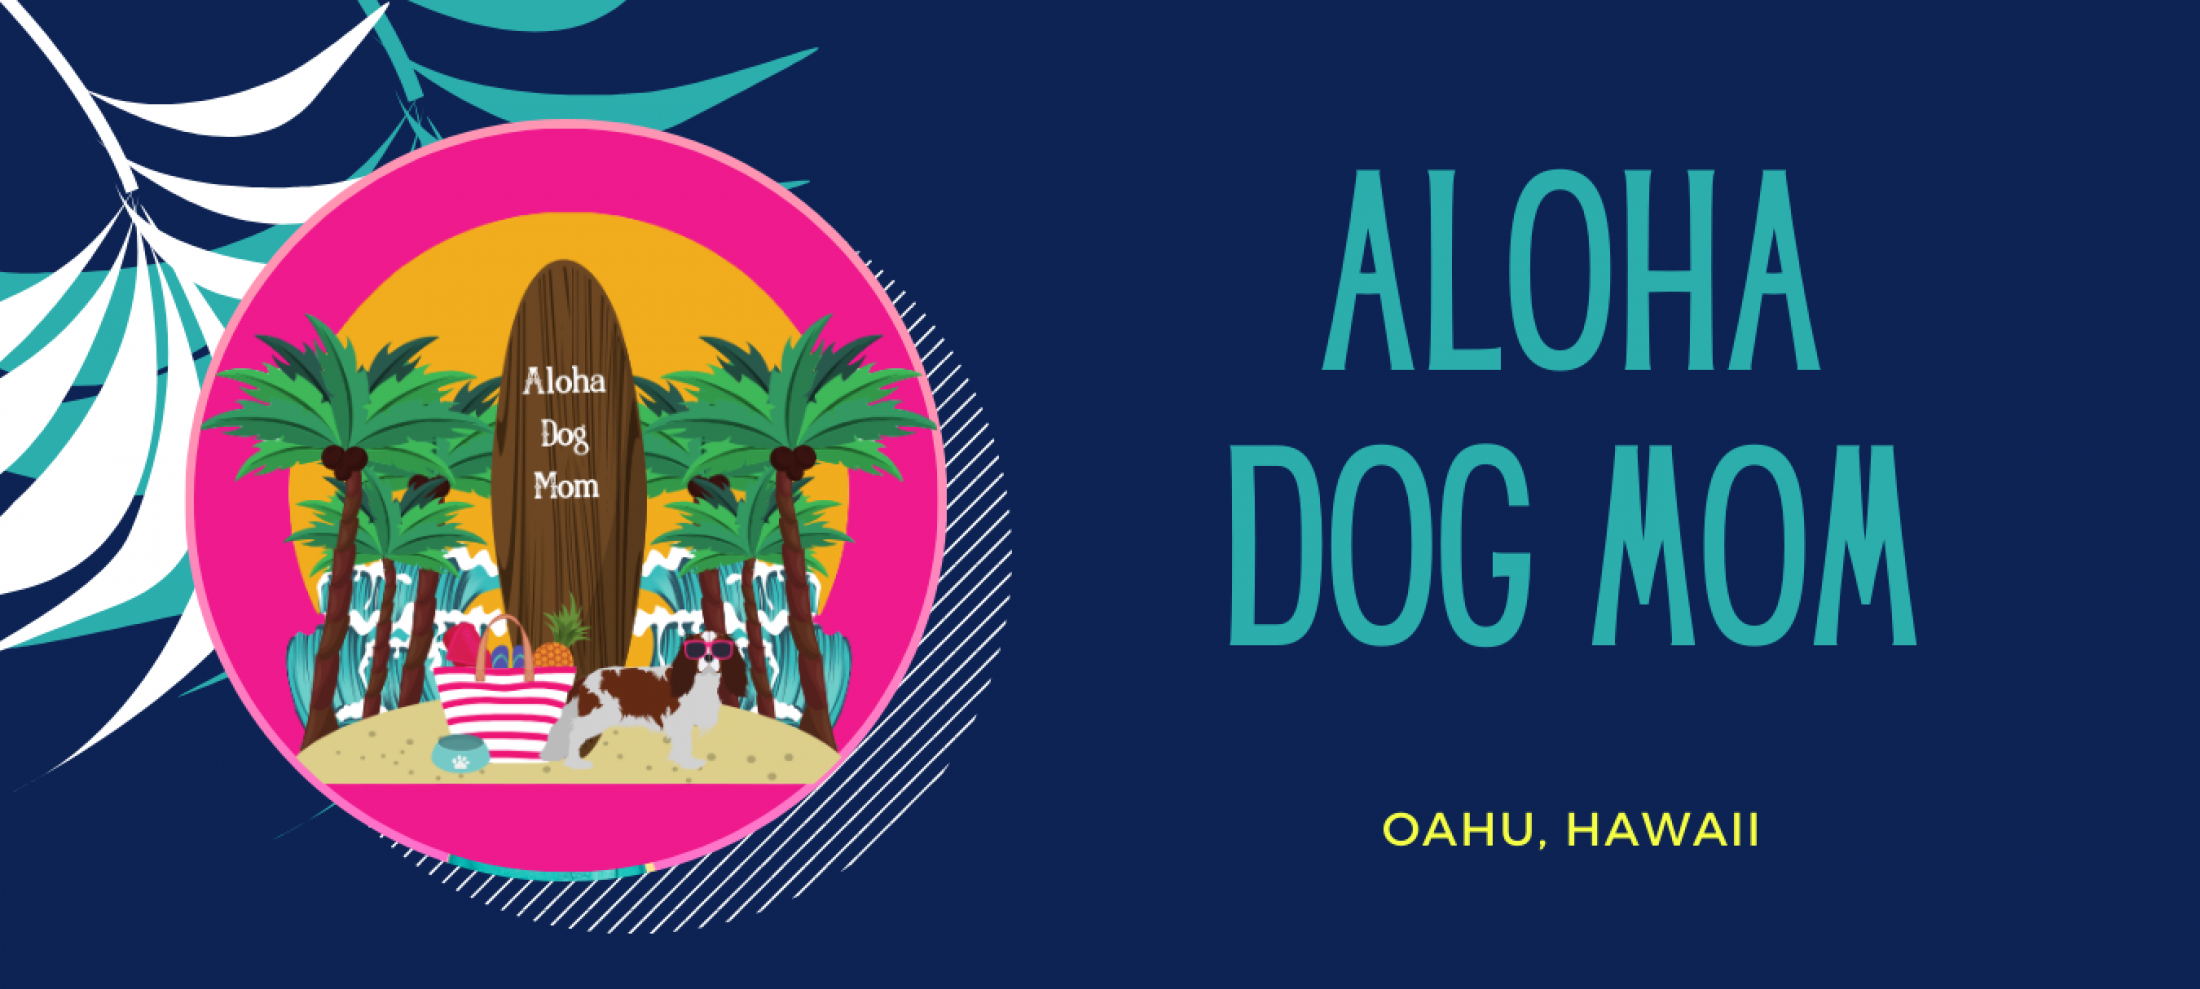 Aloha Dog Mom